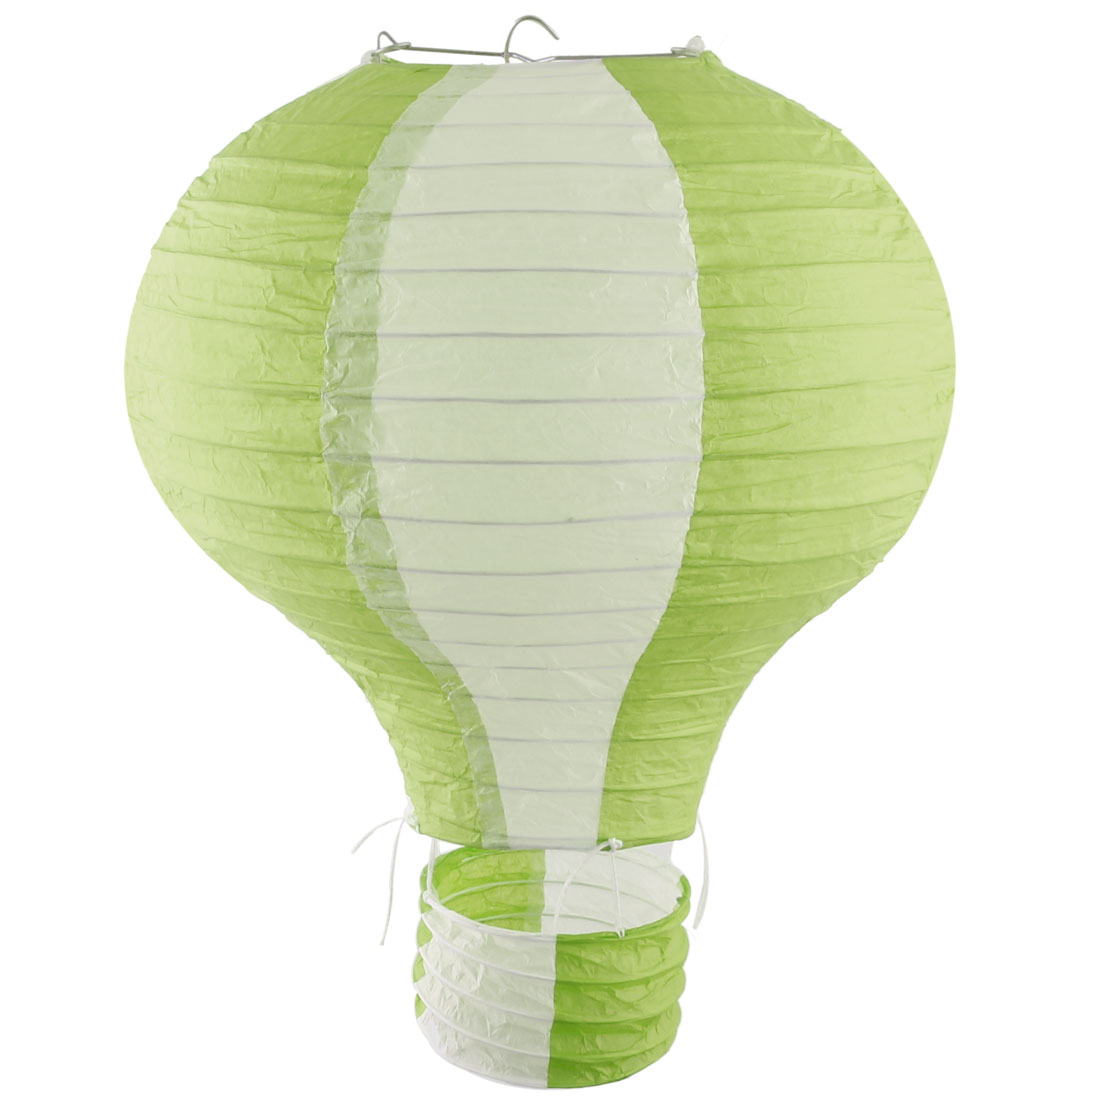 Restaurant Party Paper Lightless Hanging DIY Decor Hot Air Balloon Lantern Light Green White 10 Inch Dia